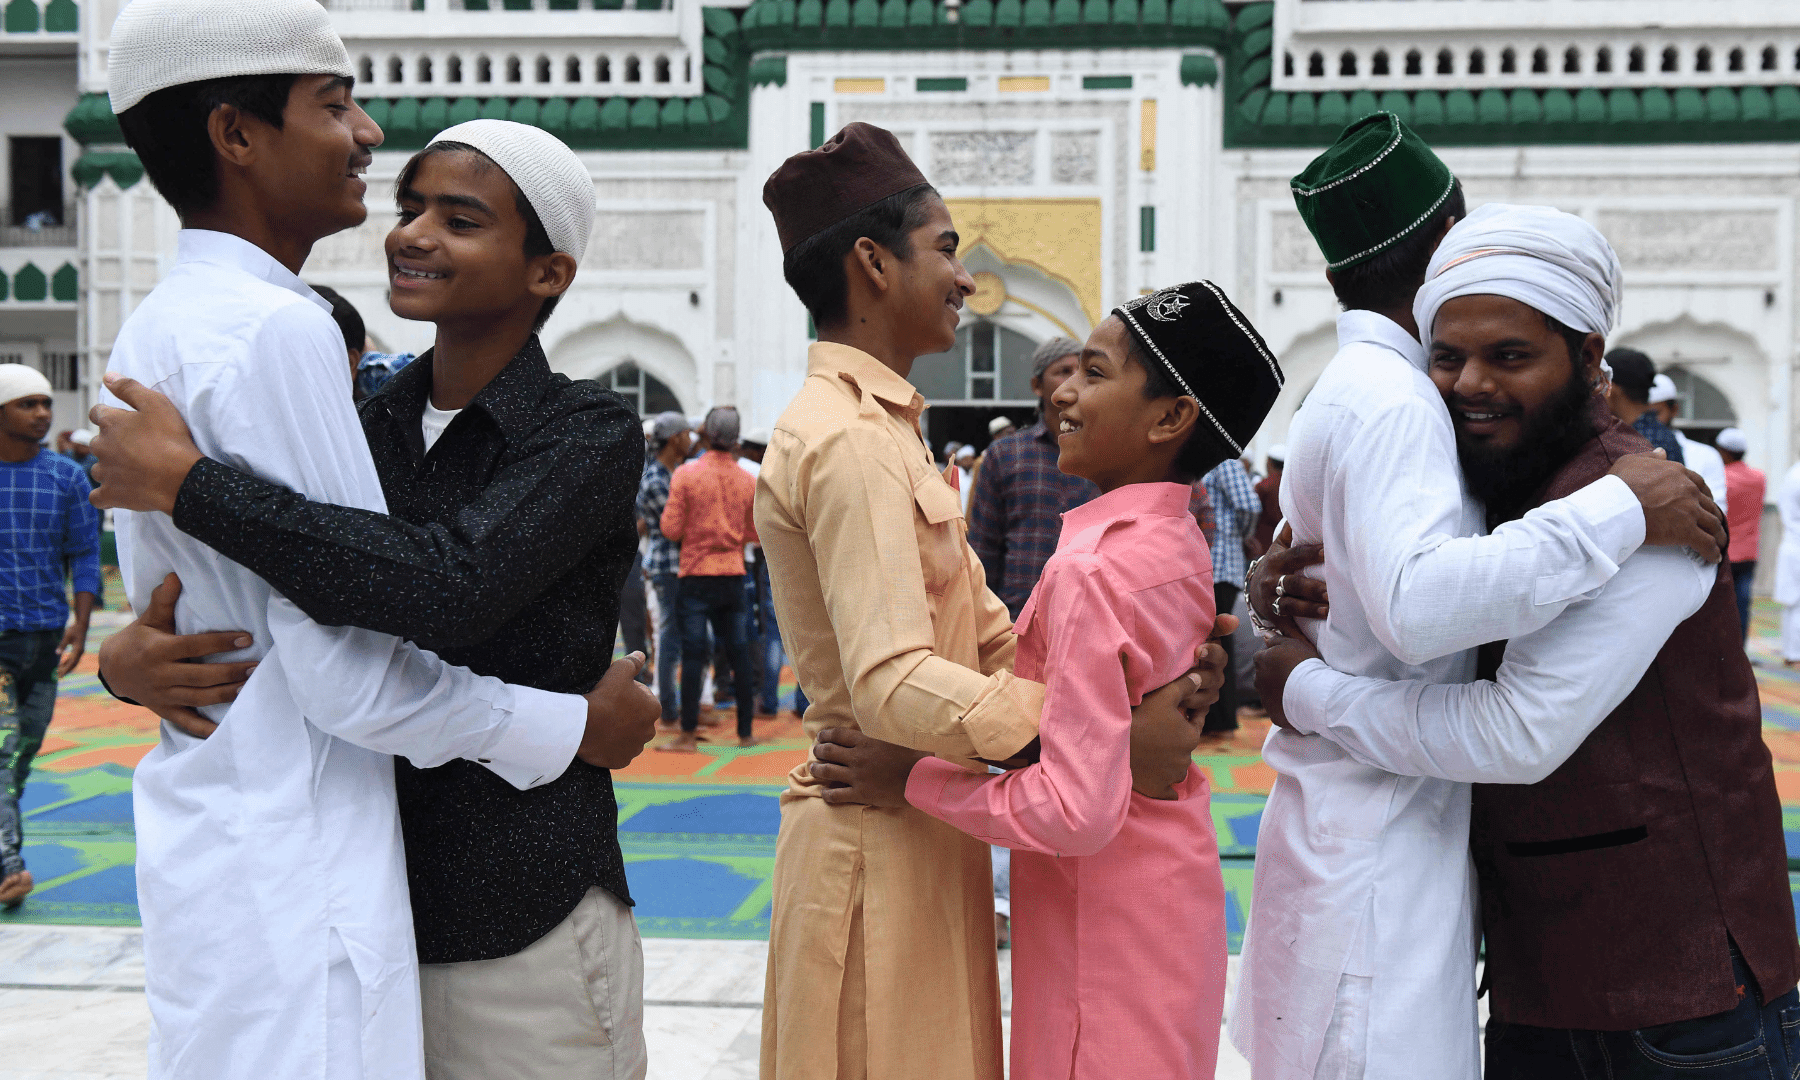 People greet each other after offering prayers during Eidul Azha or the 'Festival of Sacrifice, at Jama Masjid Khairuddin in Amritsar. — AFP